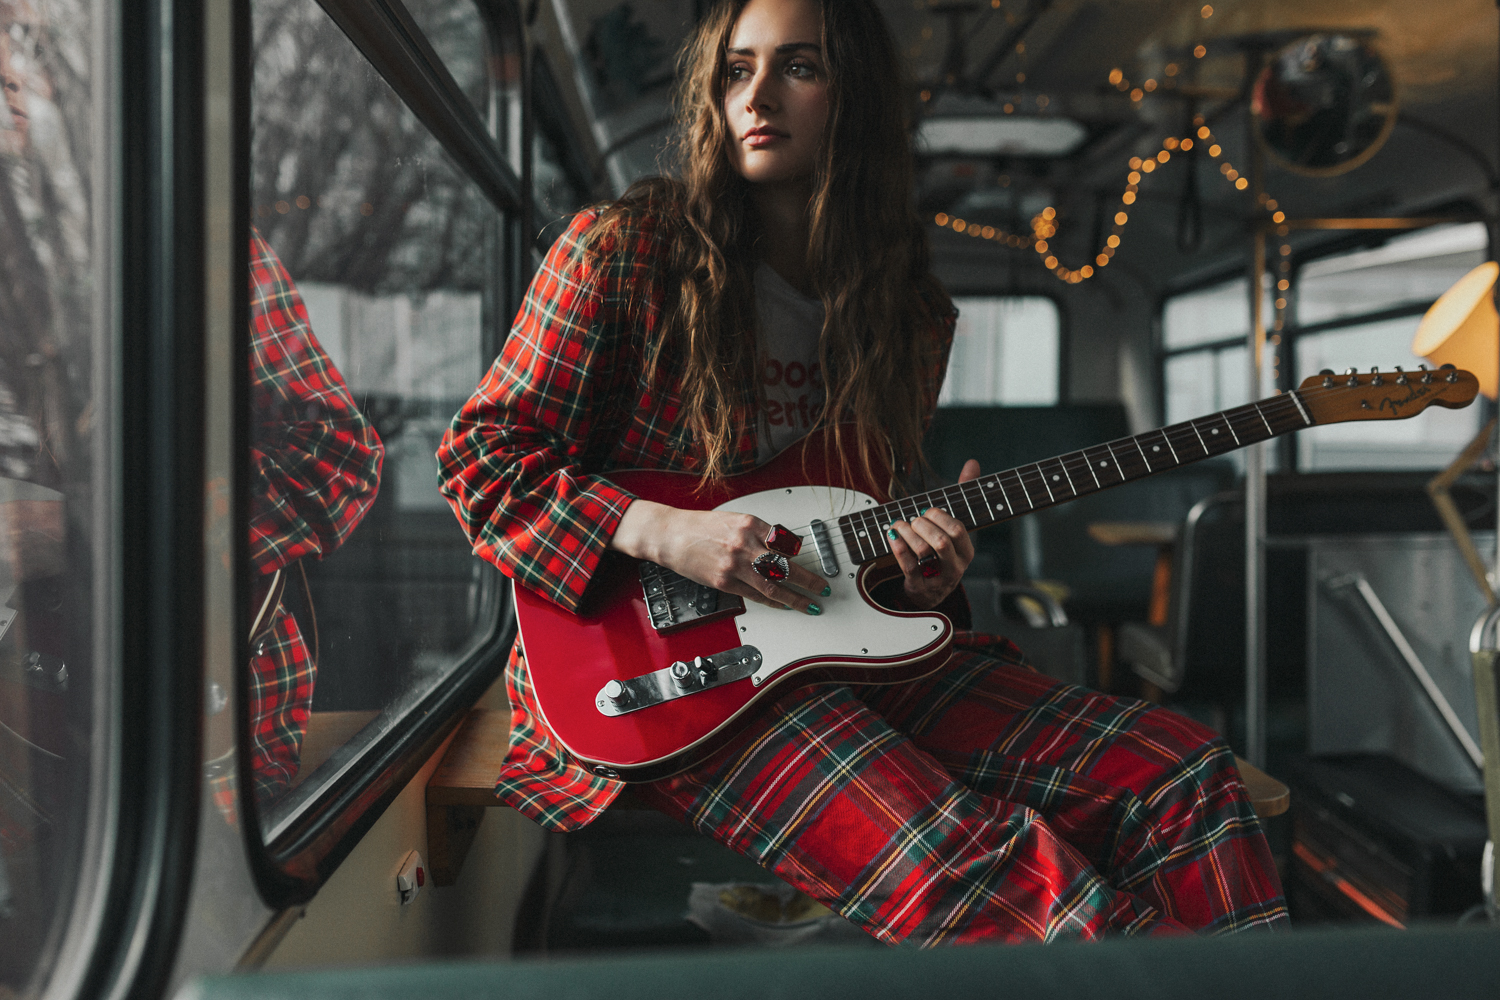 Musician Lasca Dry plays guitar in bus during photo shoot.